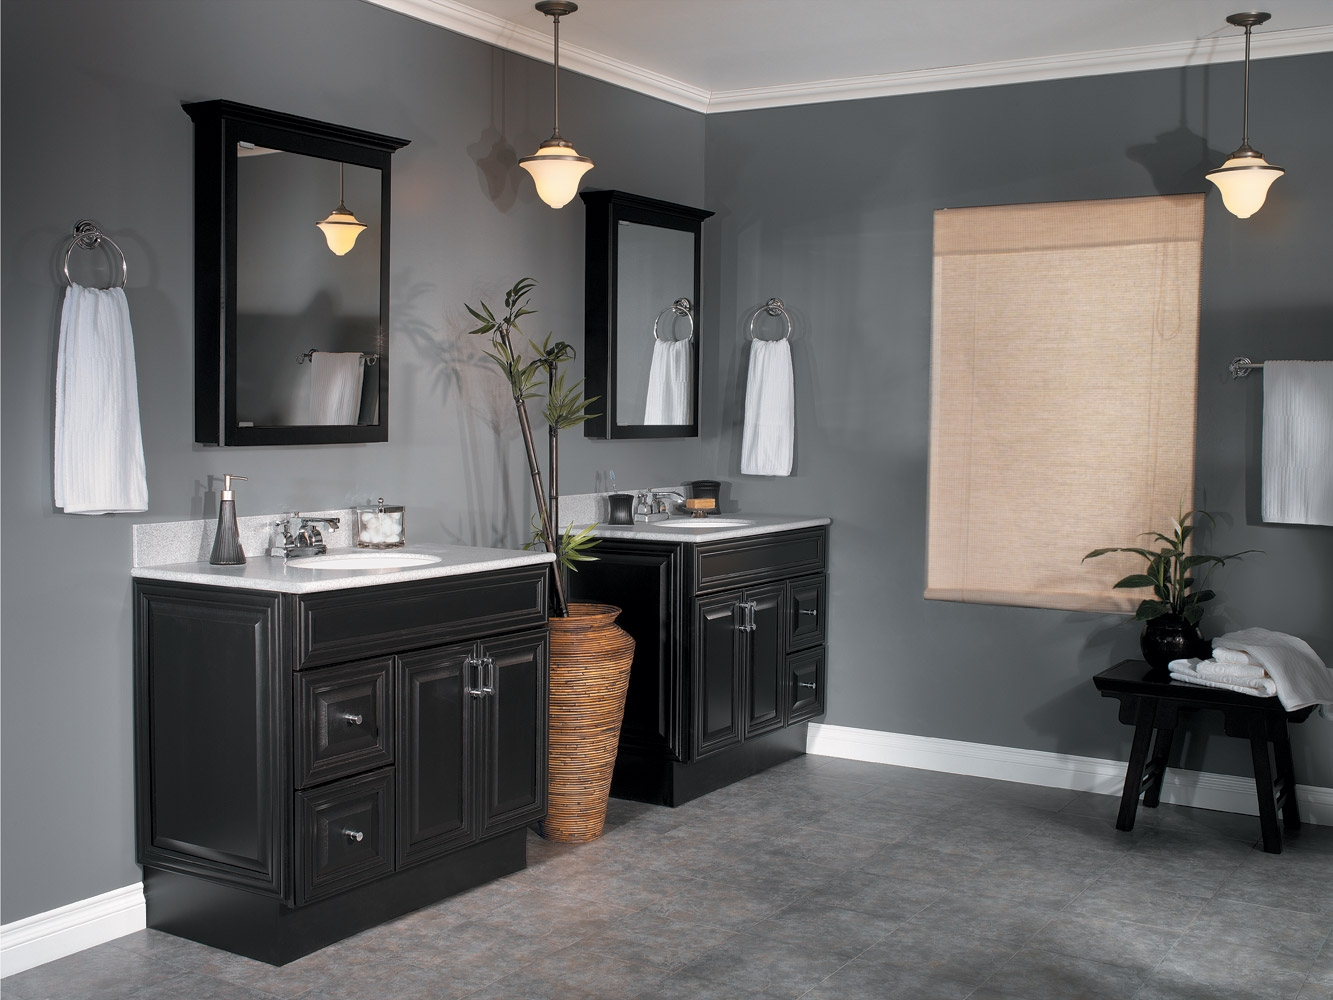 Permalink to Black Cabinet Bathroom Ideas